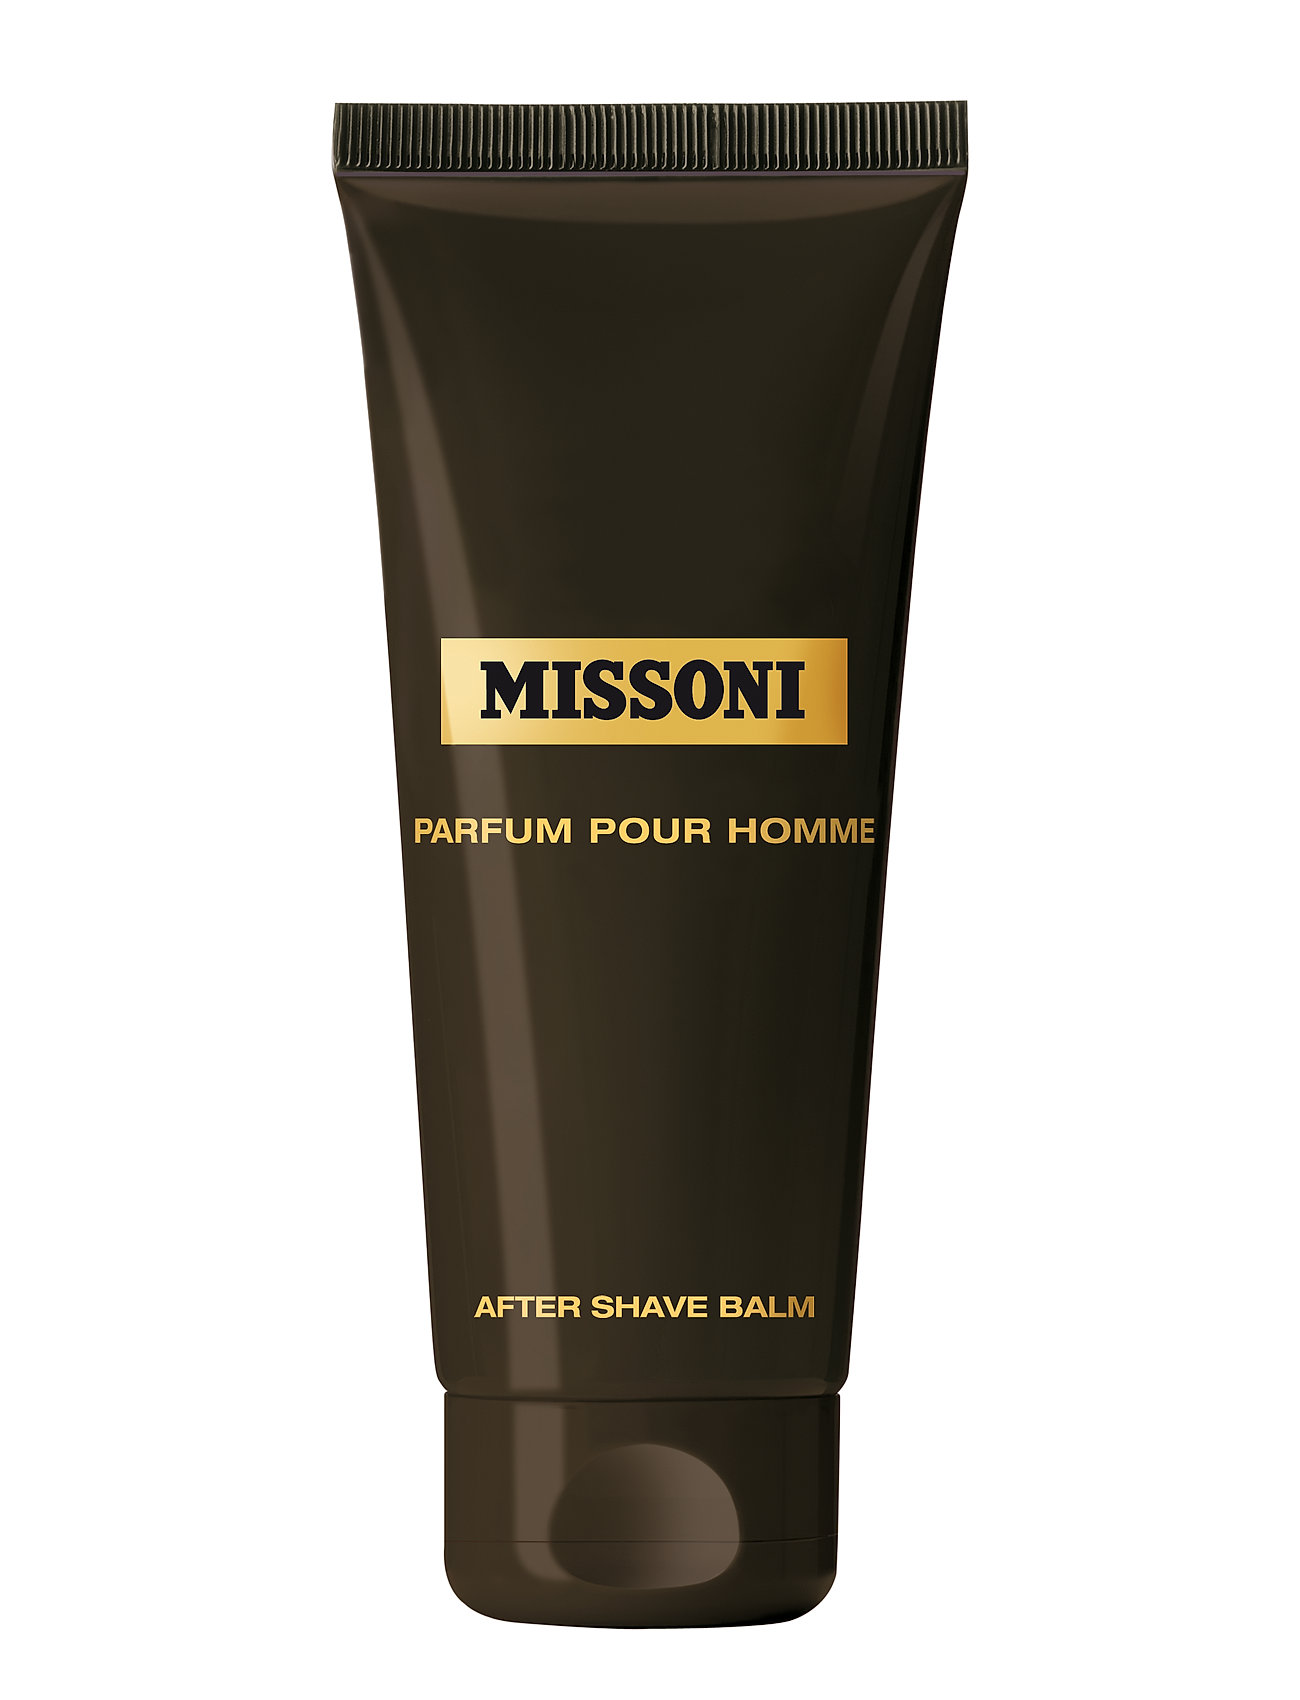 Image of Missoni Homme After Shave Balm Beauty MEN Shaving Products After Shave Nude Missoni Fragrance (3281588823)